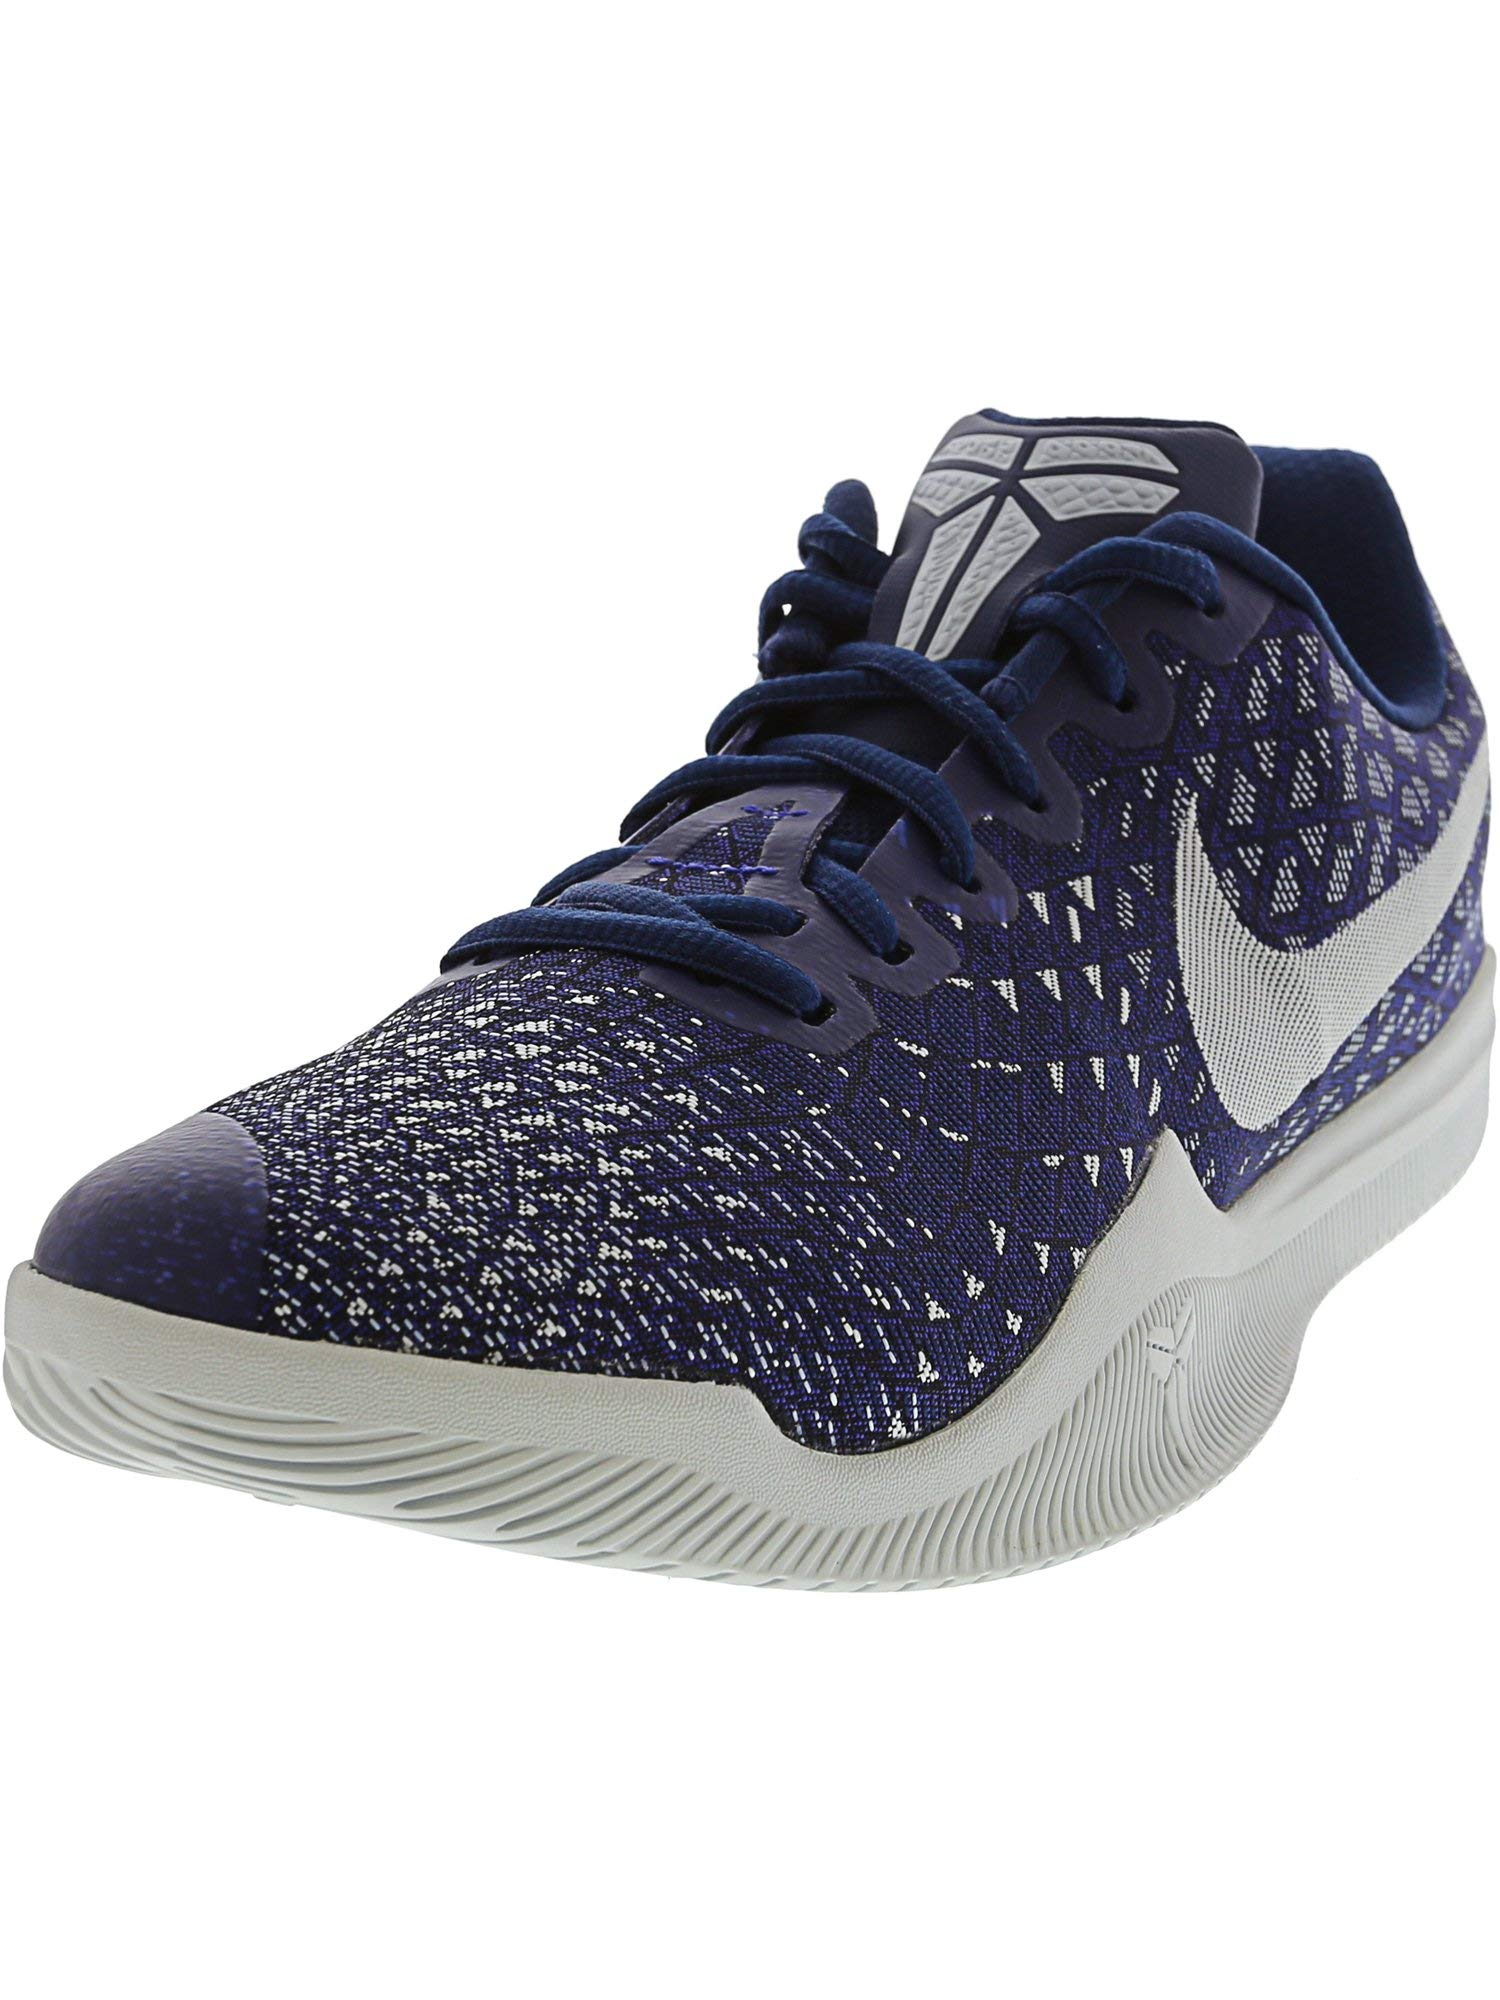 f06c8dd04c97 Galleon - Nike Kobe Mamba Instinct Mens Basketball Shoes (9) Navy Blue